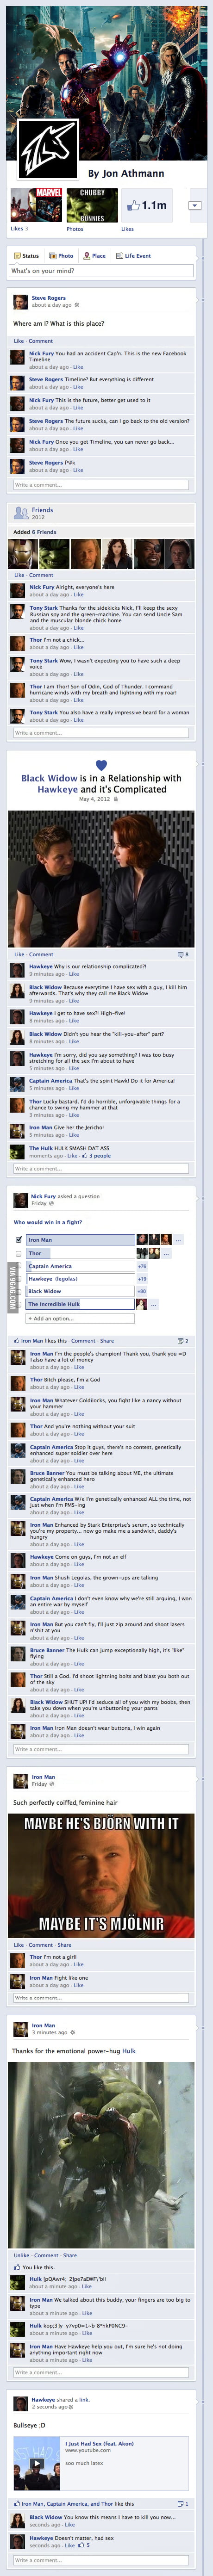 The Avengers Assemble on Facebook